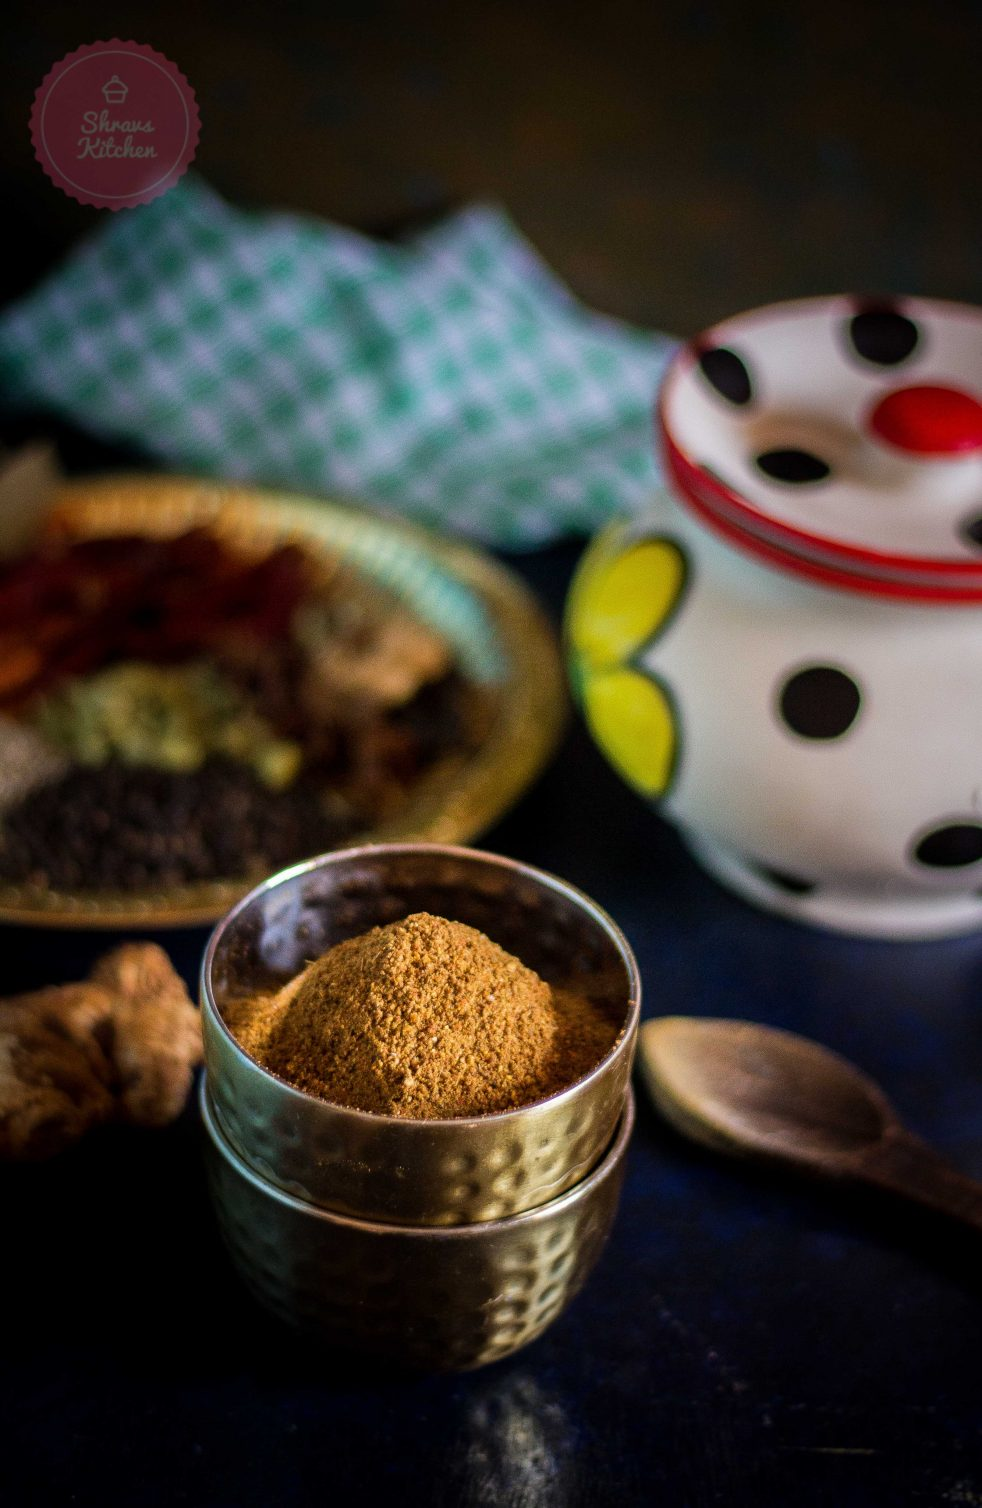 tandoori masala / homemade masala / indian spices